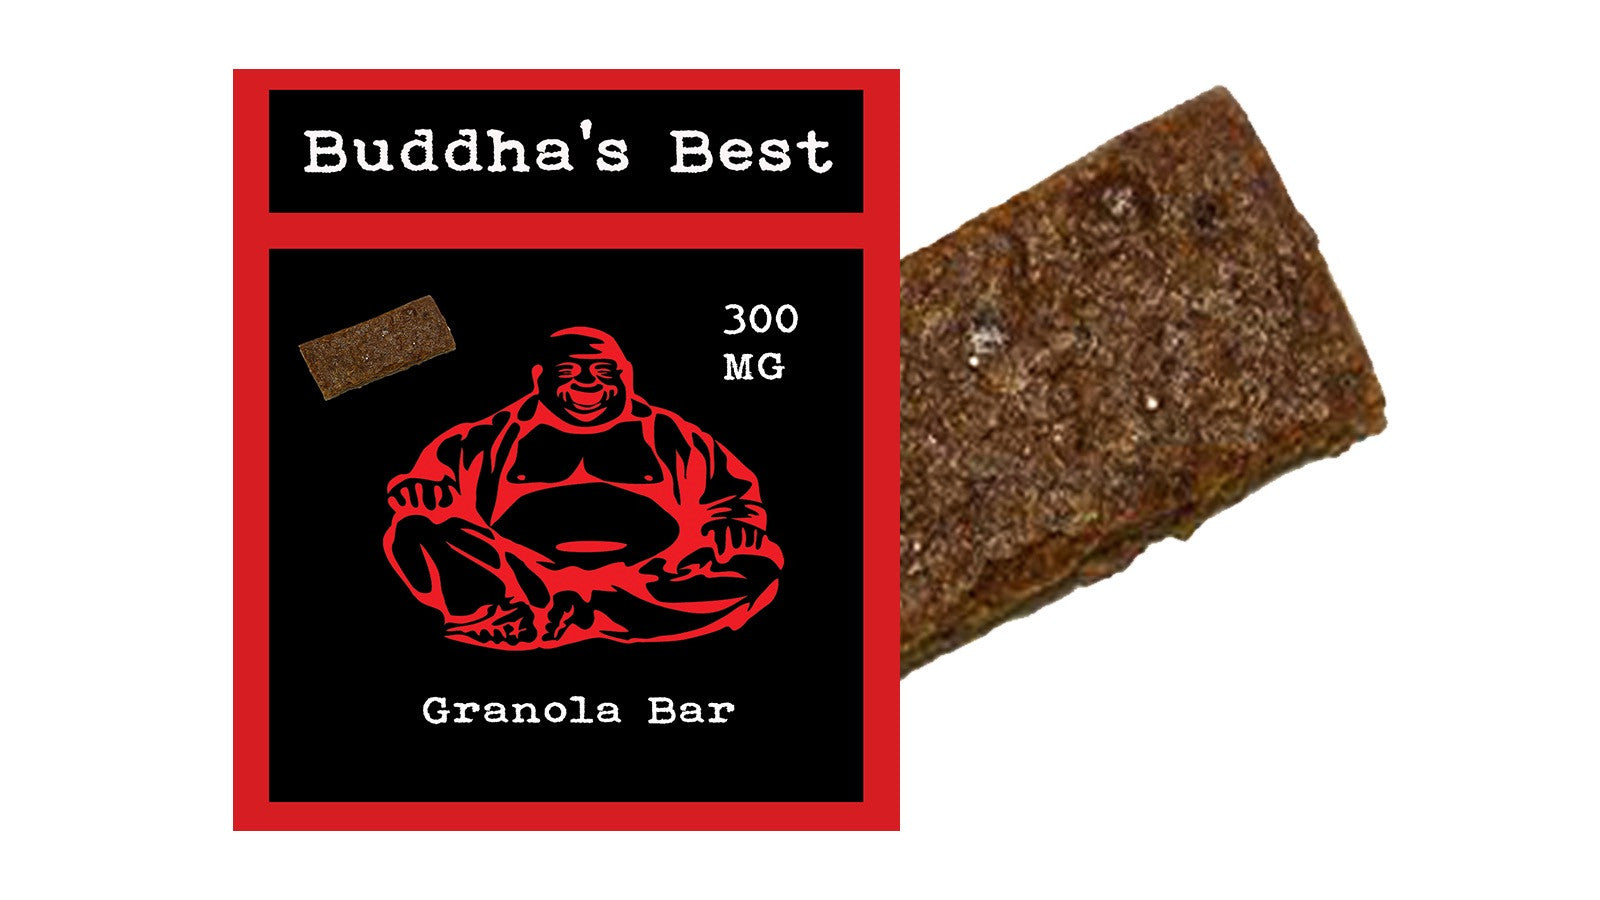 Granola Bar - Buddha's Best Edibles (300mg THC)